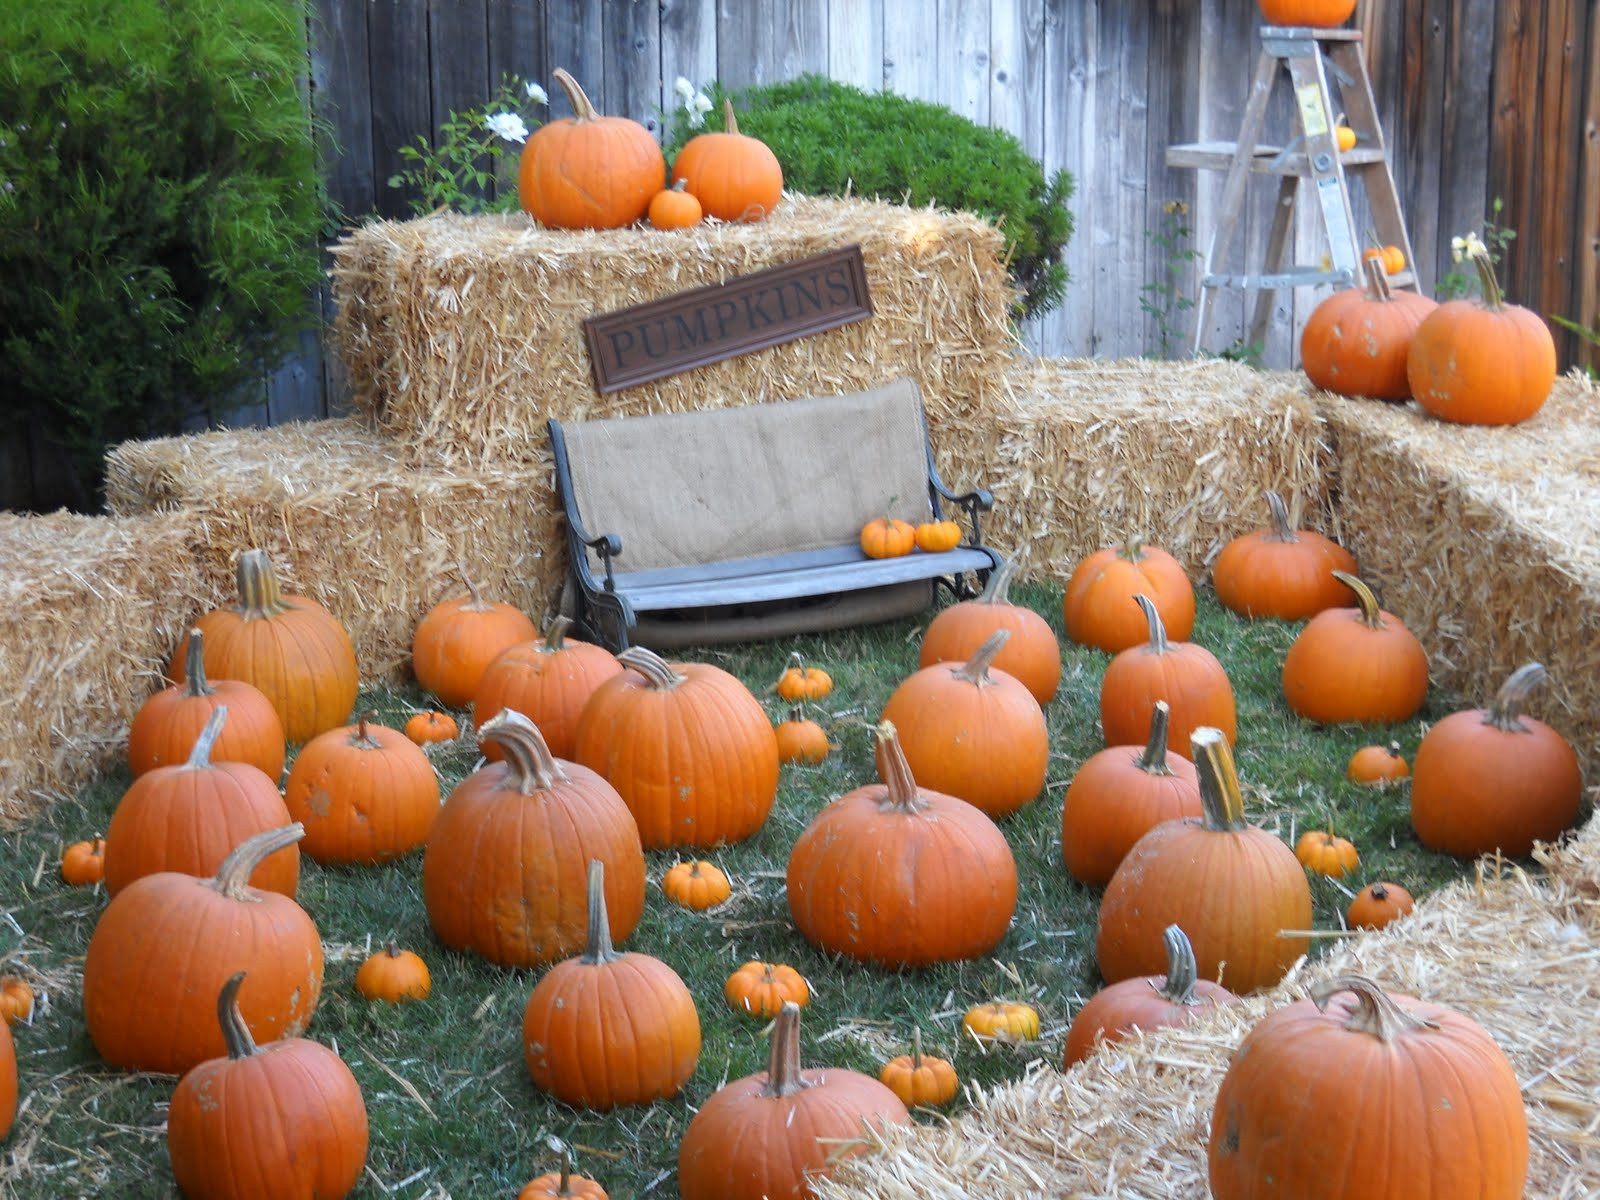 Best ideas about Pumpkin Patch Birthday Party . Save or Pin rosespetitemaison Baby Jake s First Birthday or Pumpkin Now.